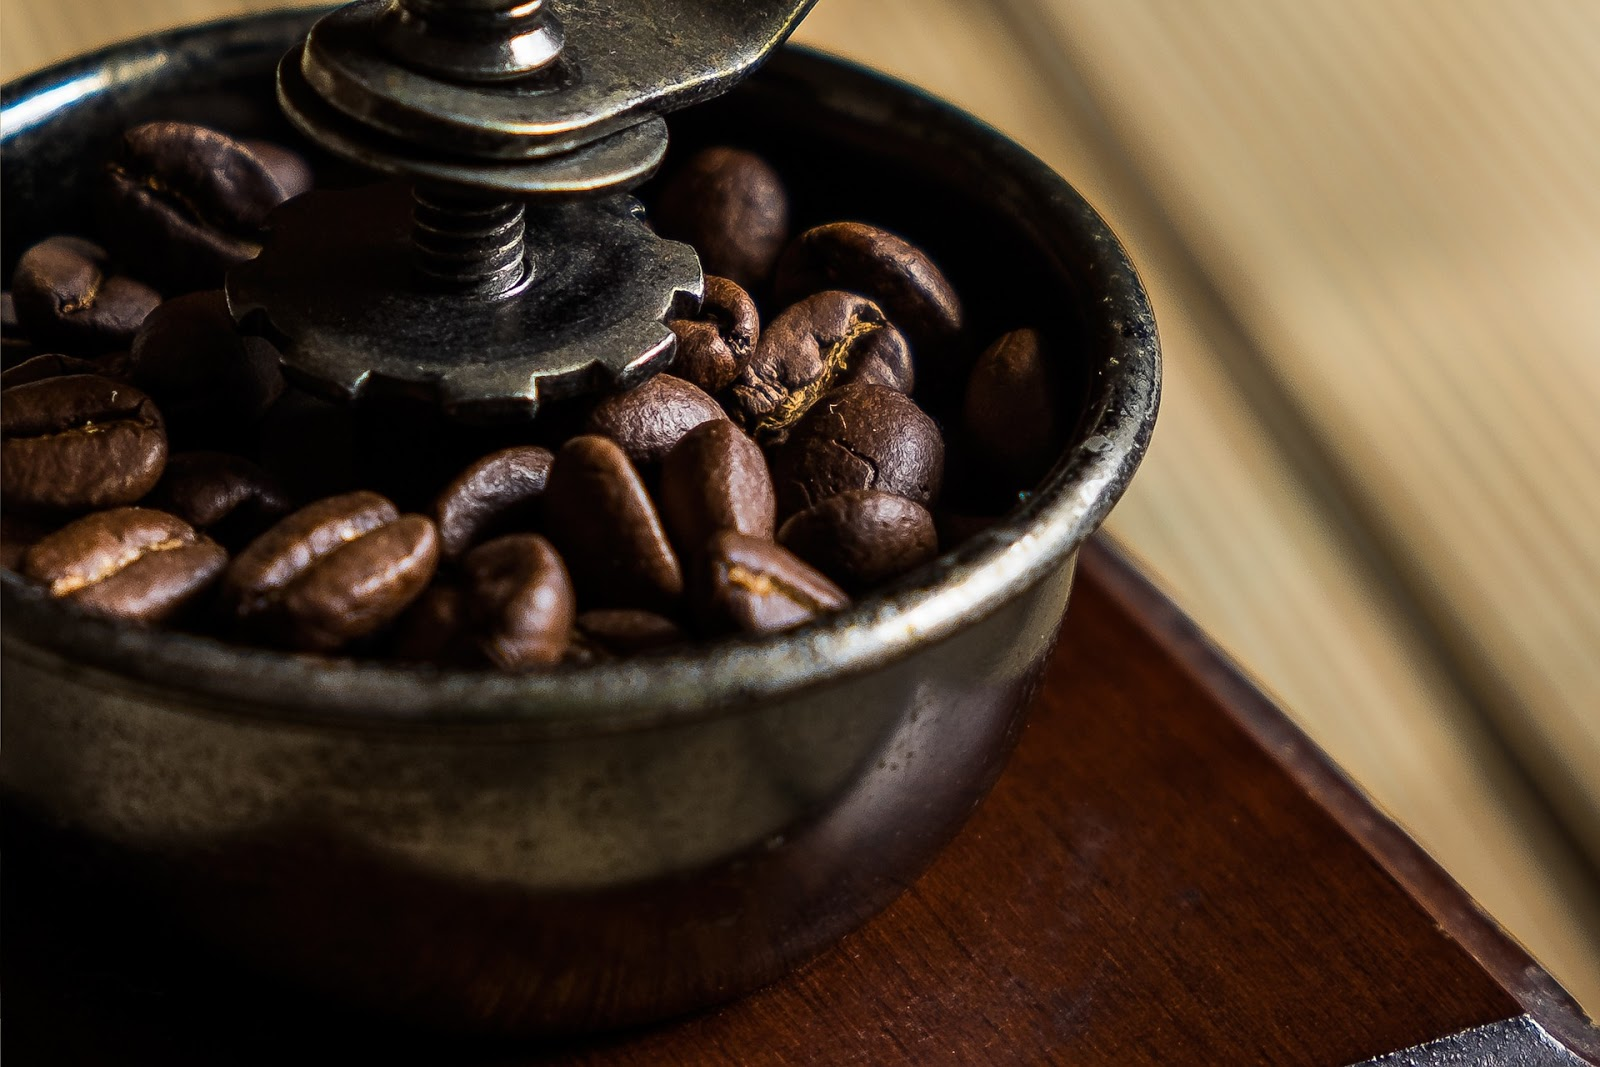 Closeup of beans in a coffee grinder